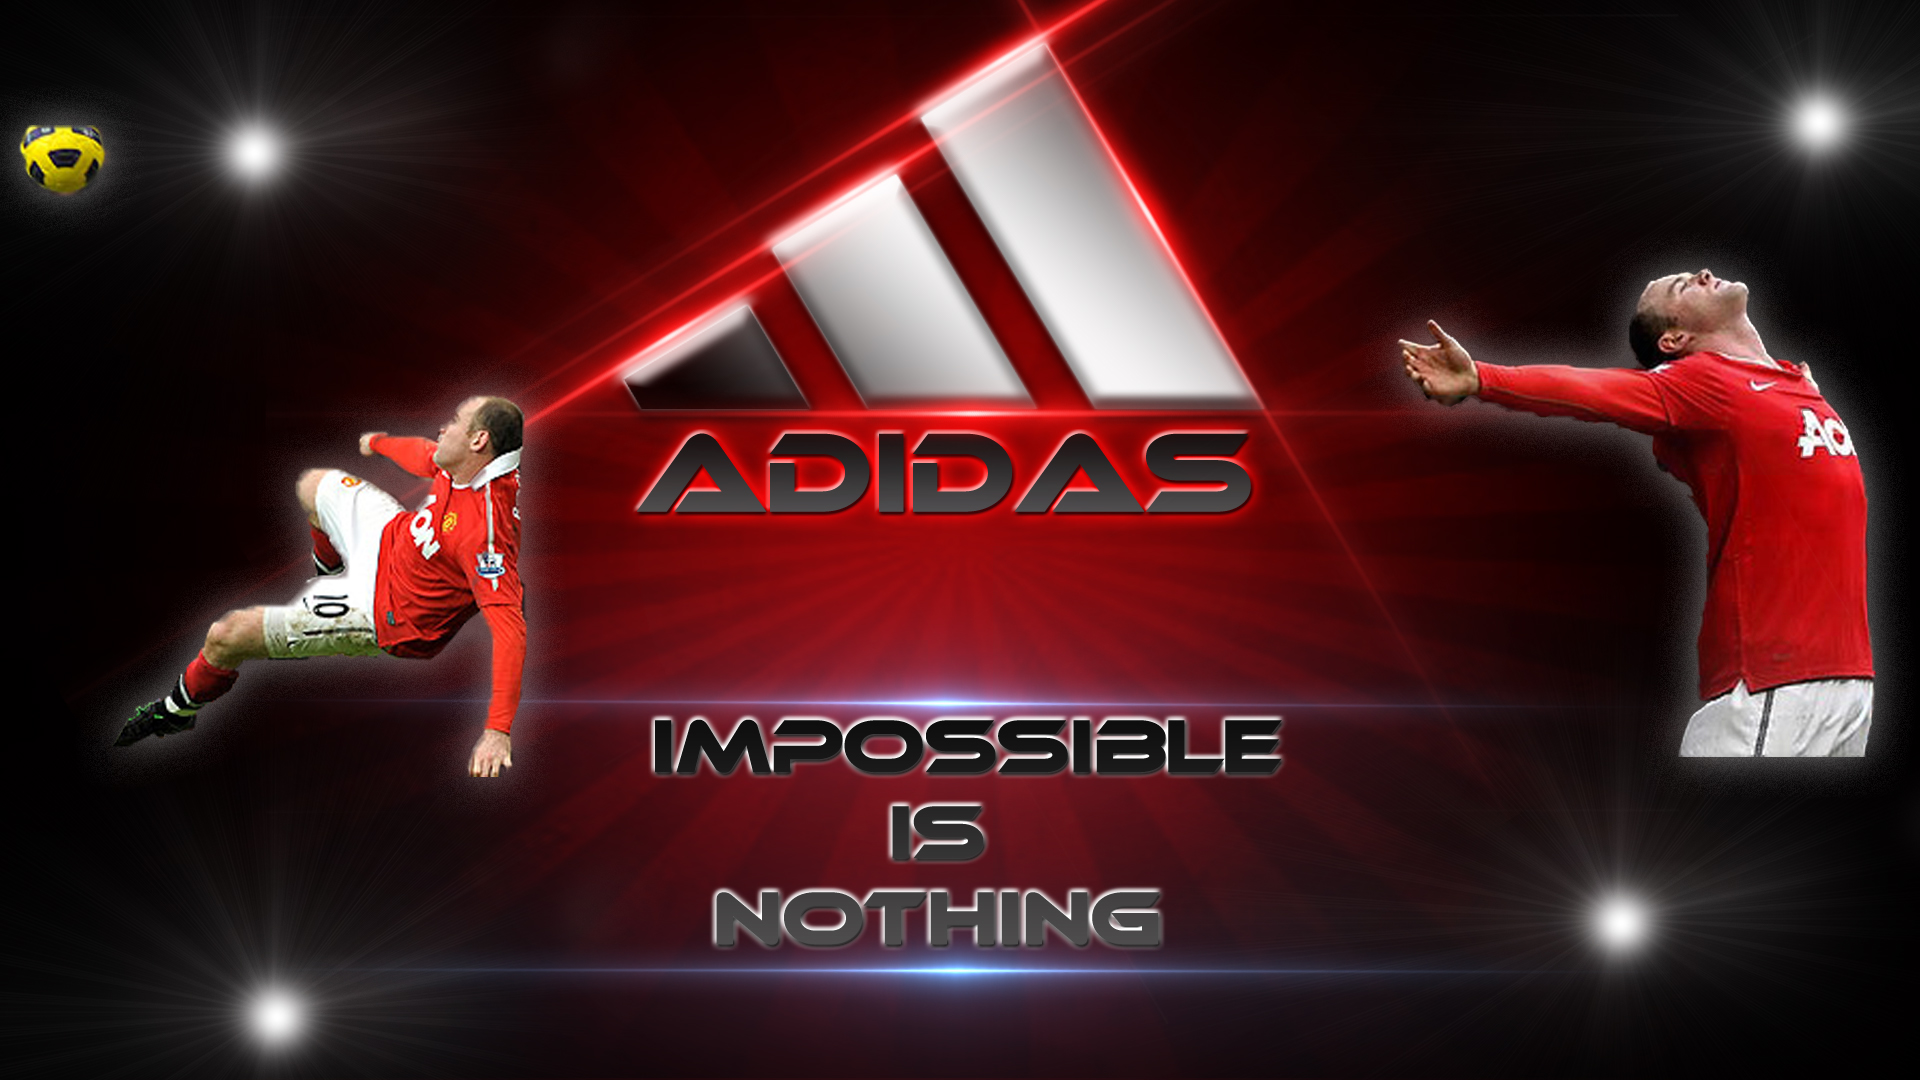 Adidas - Impossible is Nothing // Desktop BG by FuZionFXHD ...